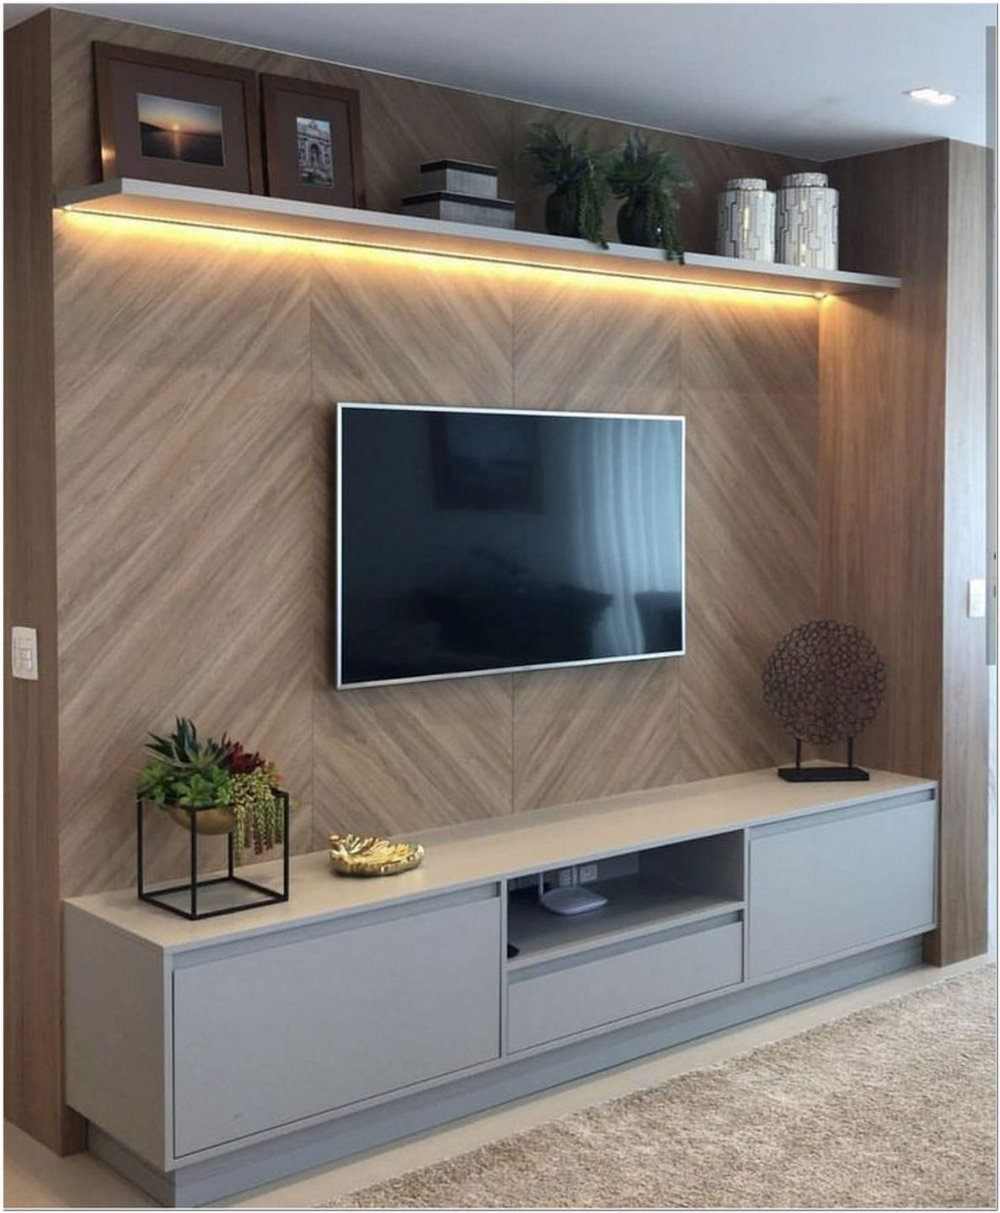 62 Best Ways To Decorate Around The Tv 9 In 2020 Tv Room De